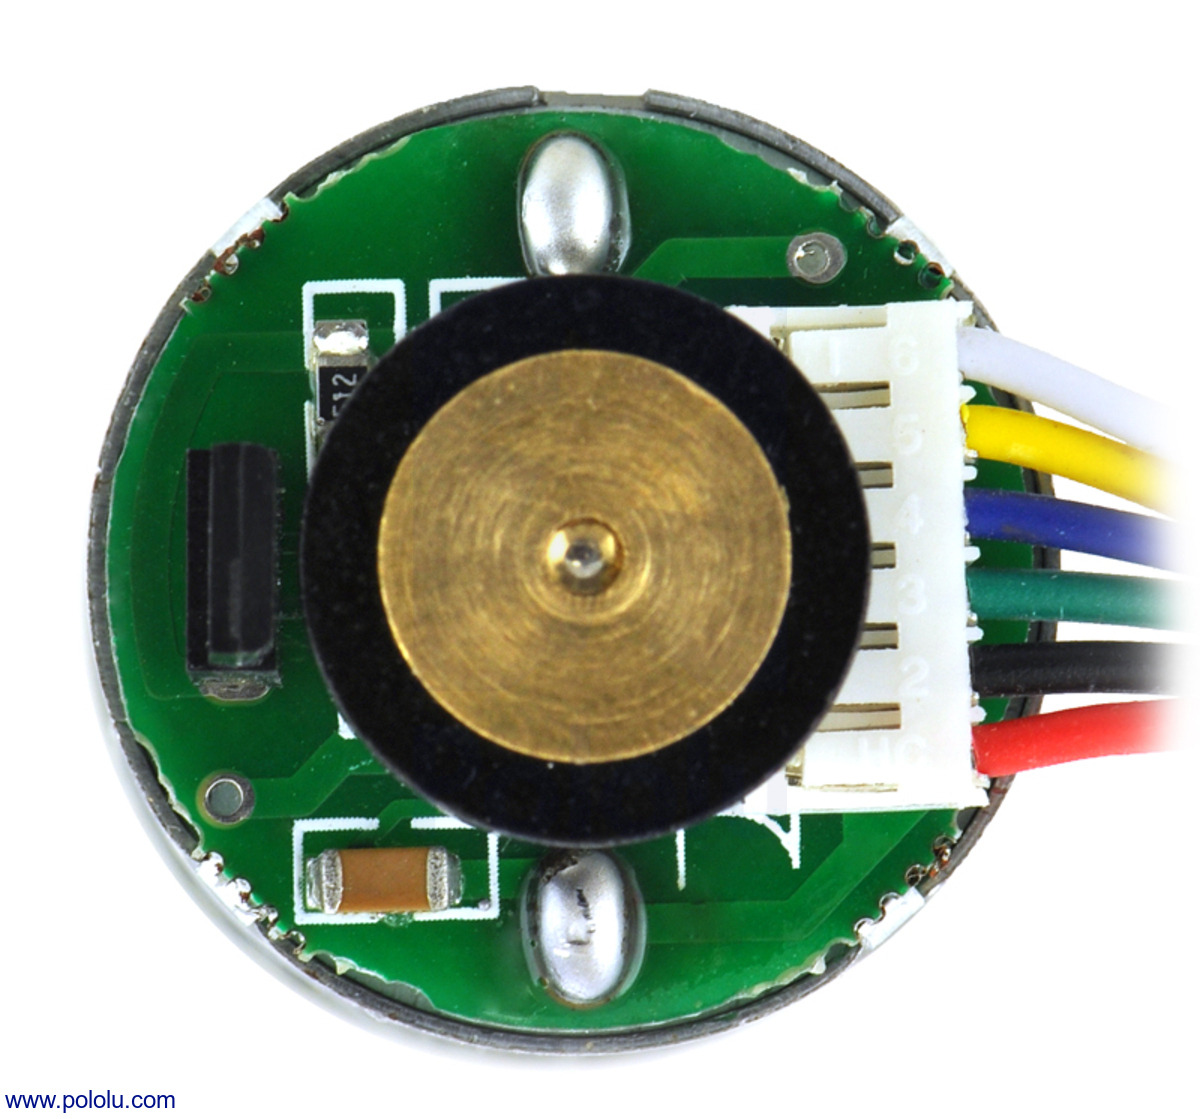 hight resolution of 25d mm metal gearmotor with 48 cpr encoder close up view of encoder